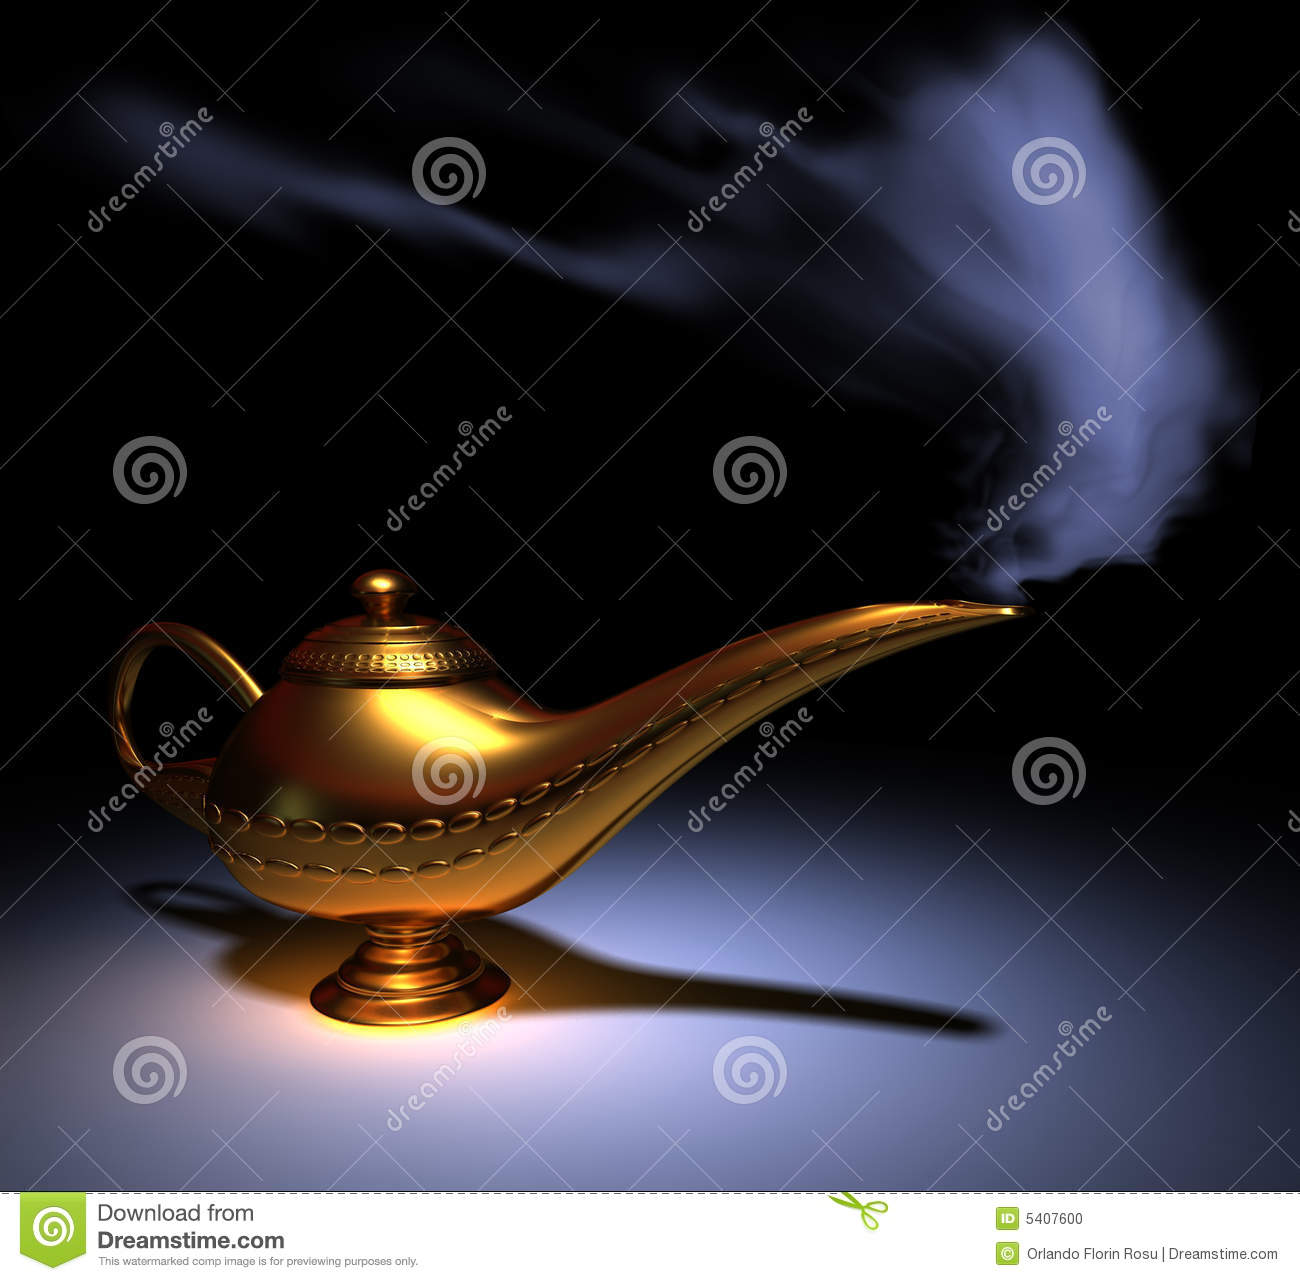 Lampe D Aladdin Illustration Stock Illustration Du Idees 5407600